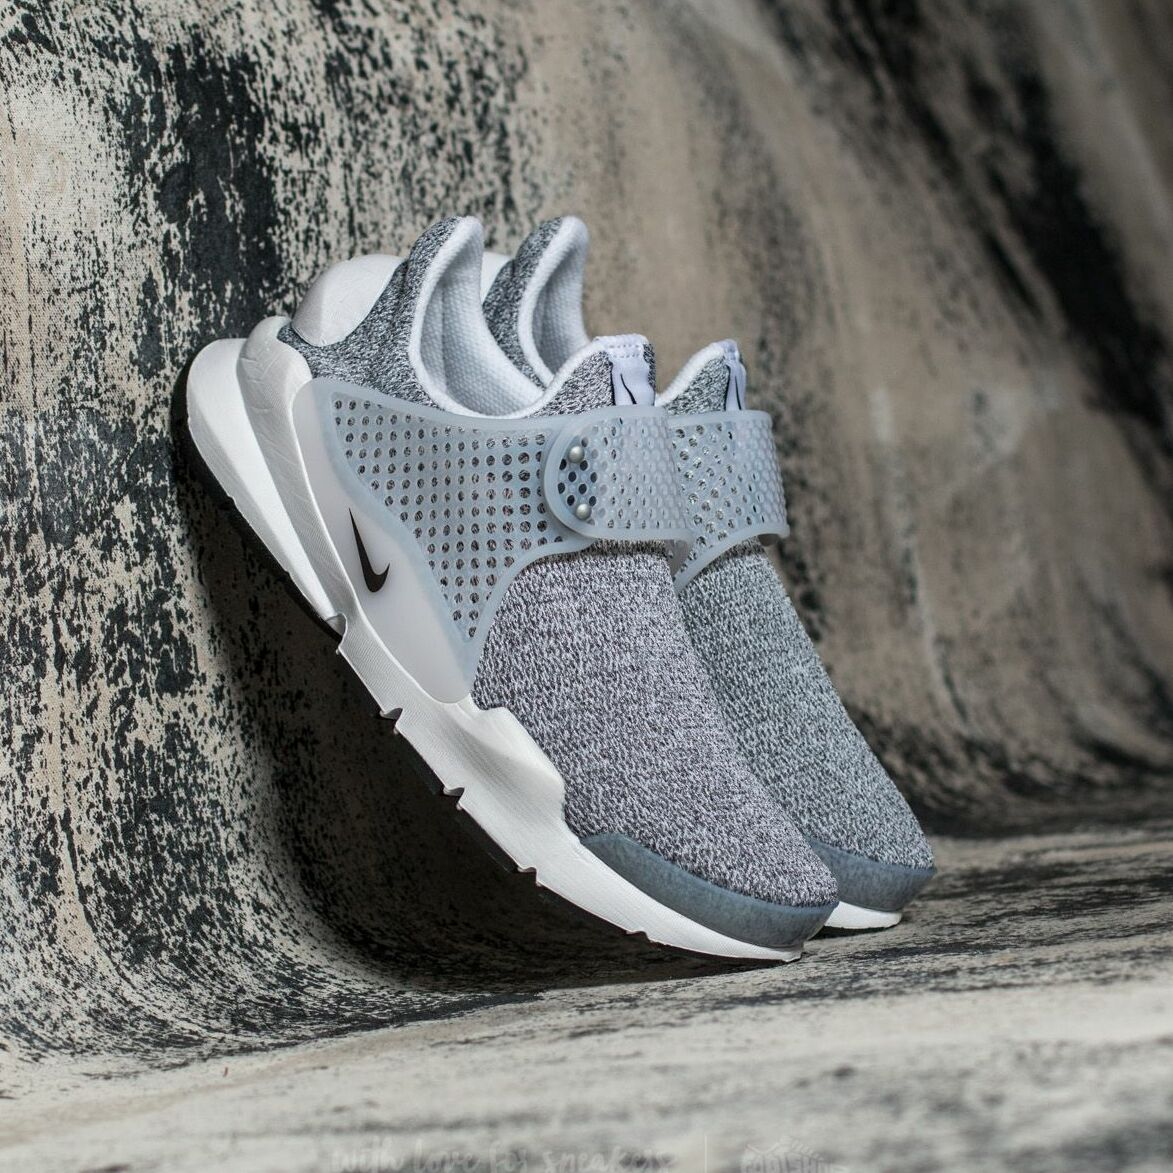 Nike Wmns Sock Dart SE White/ Black-Metro Grey 862412-100